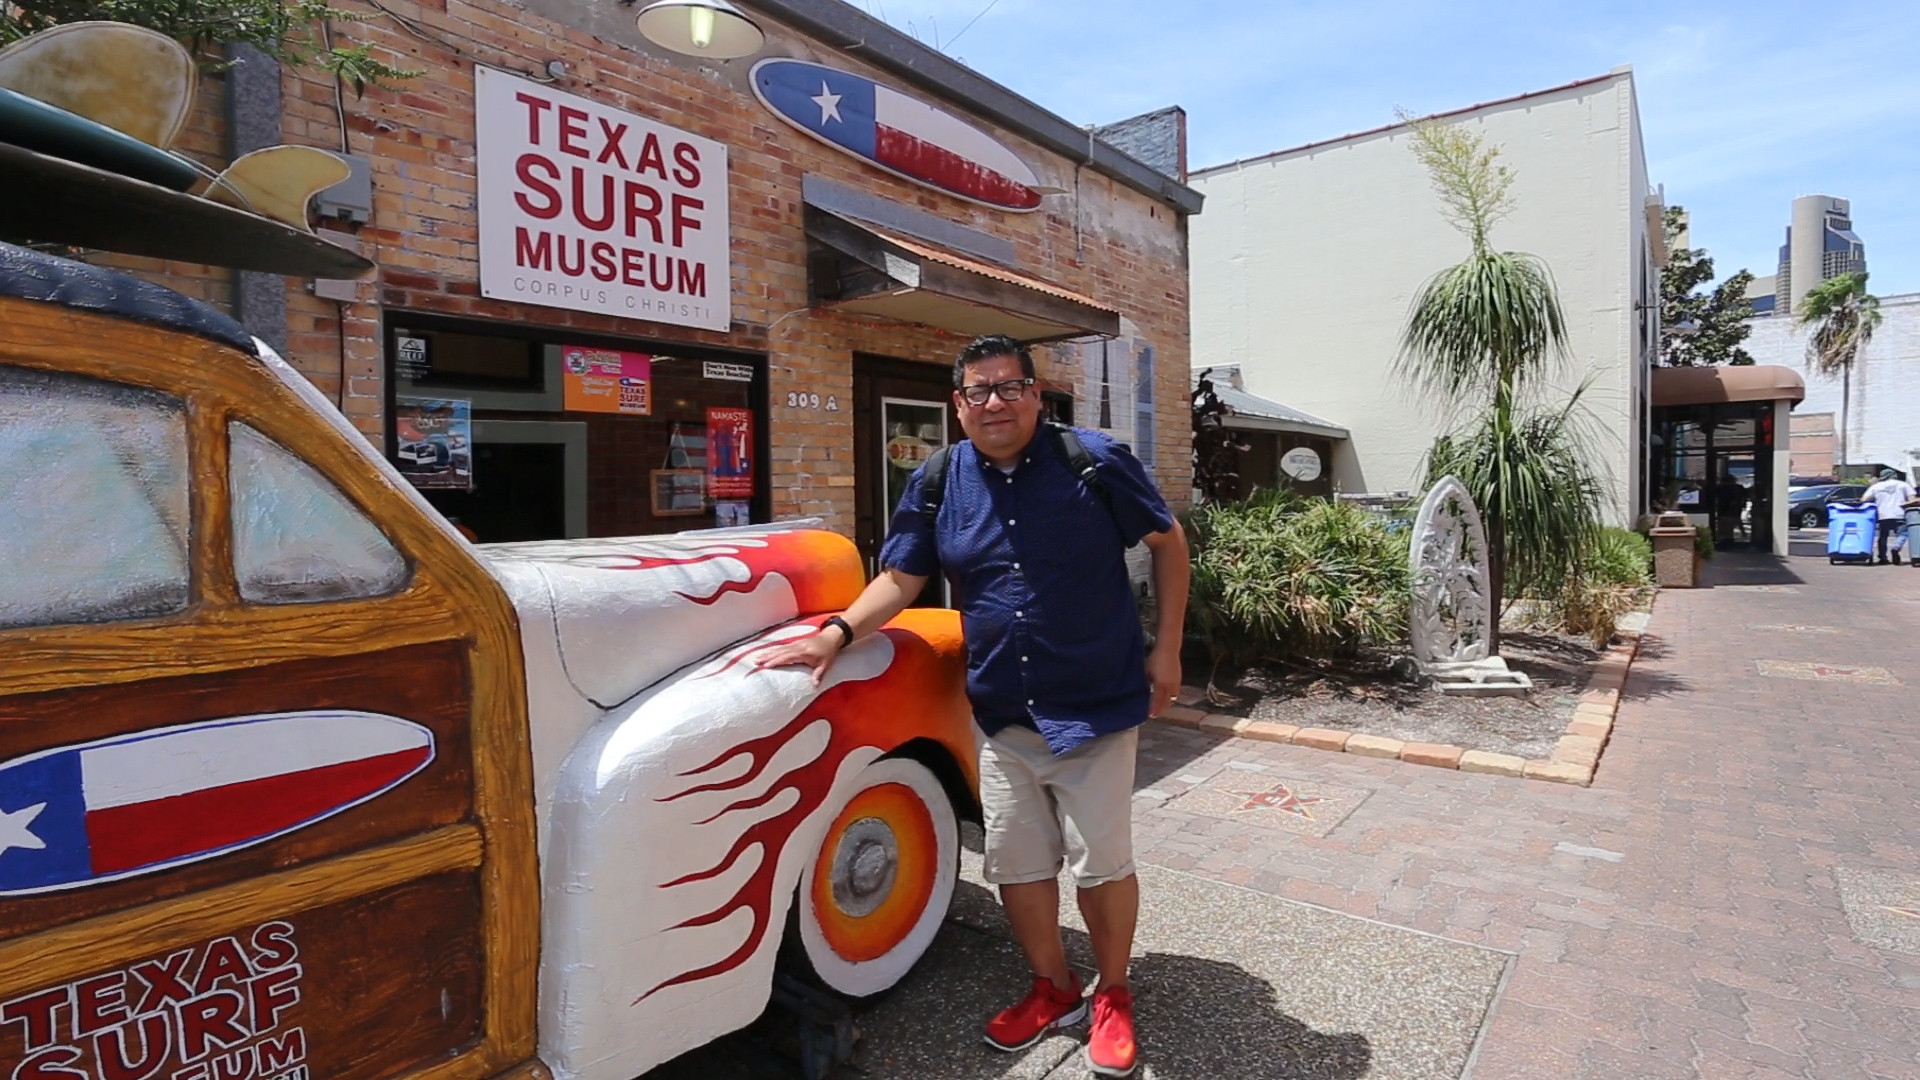 Texas Surf Museum in Corpus